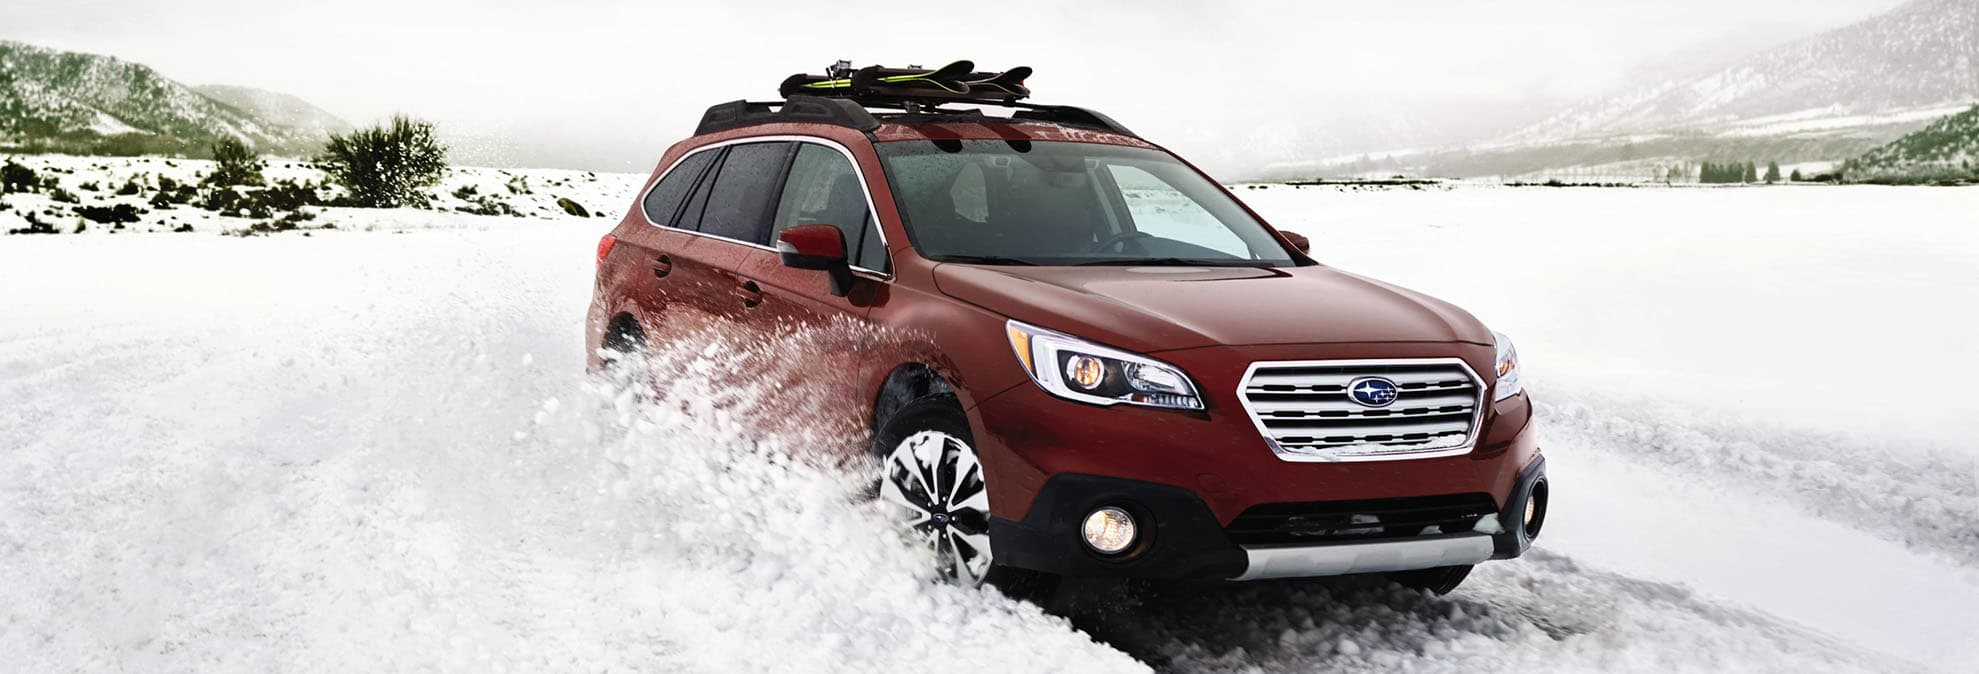 winter car care tips   keep car in peak condition - consumer